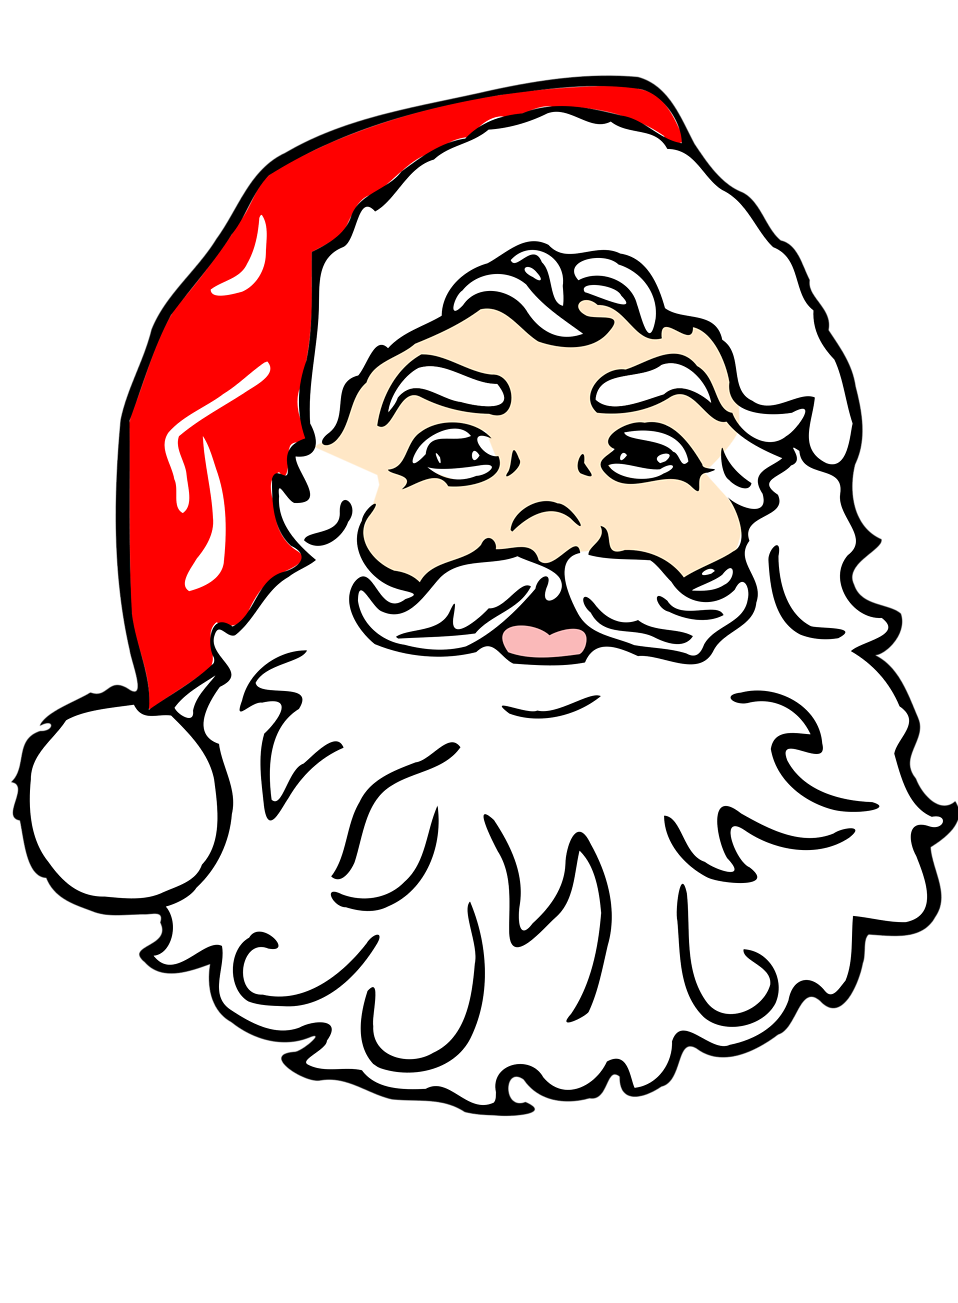 Illustration of Santa Claus : Free Stock Photo